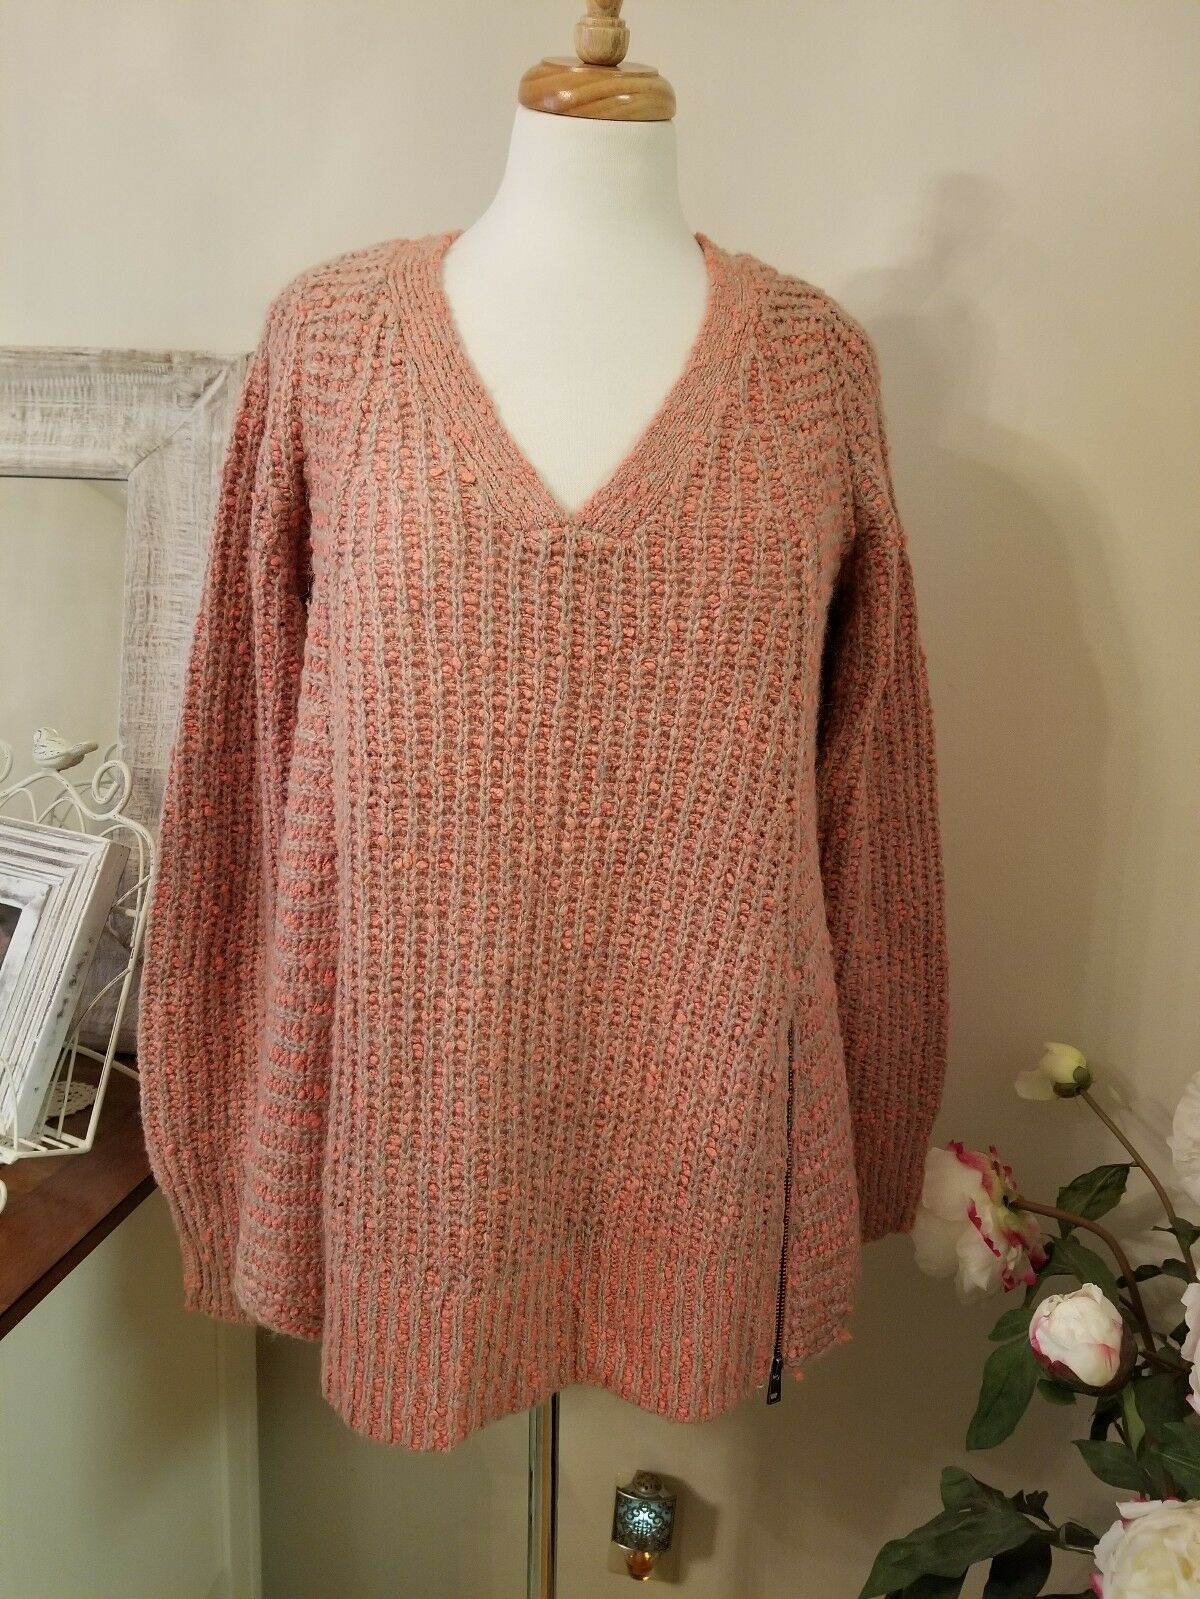 Anthropologie Anthropologie Anthropologie MOTH Zipped Stitched Sweater in Coral Tan Size L Large NWT  118 0bfeff